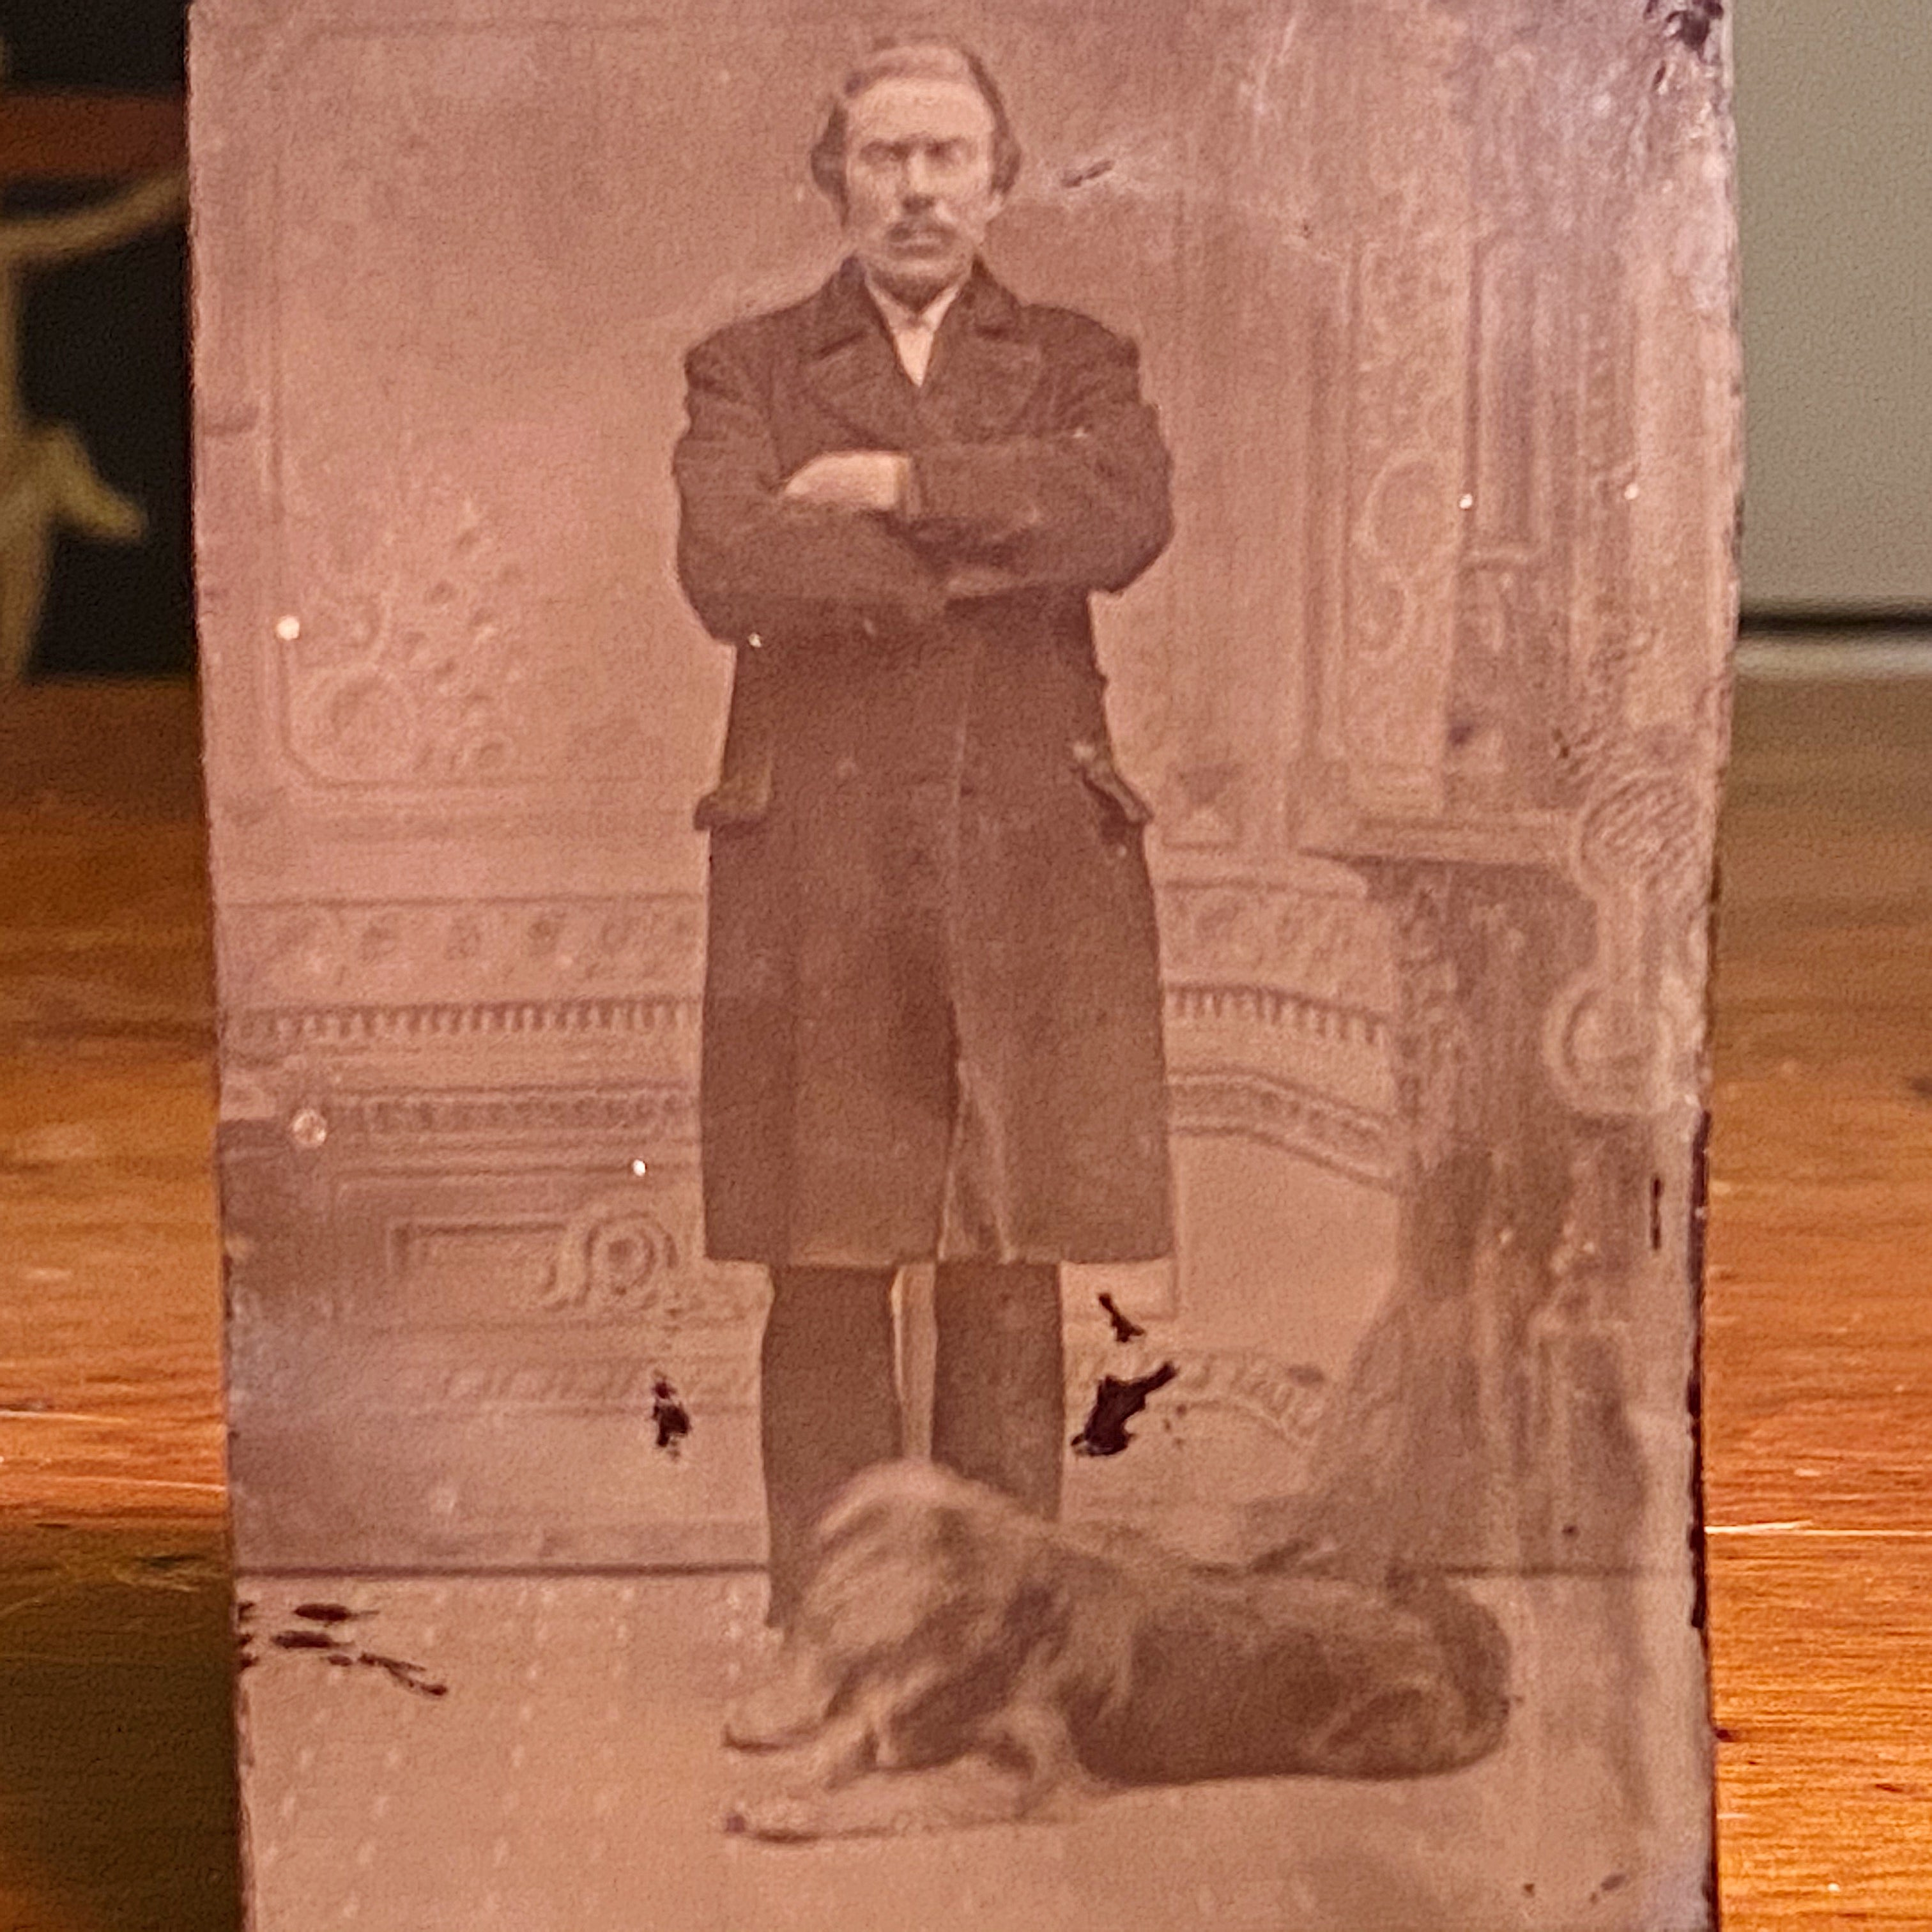 Antique Tintype of Serious Man and Dog - Rare Pet Photography - Unusual Late 1800s Photograph - Gangster? - Underground Image Weird